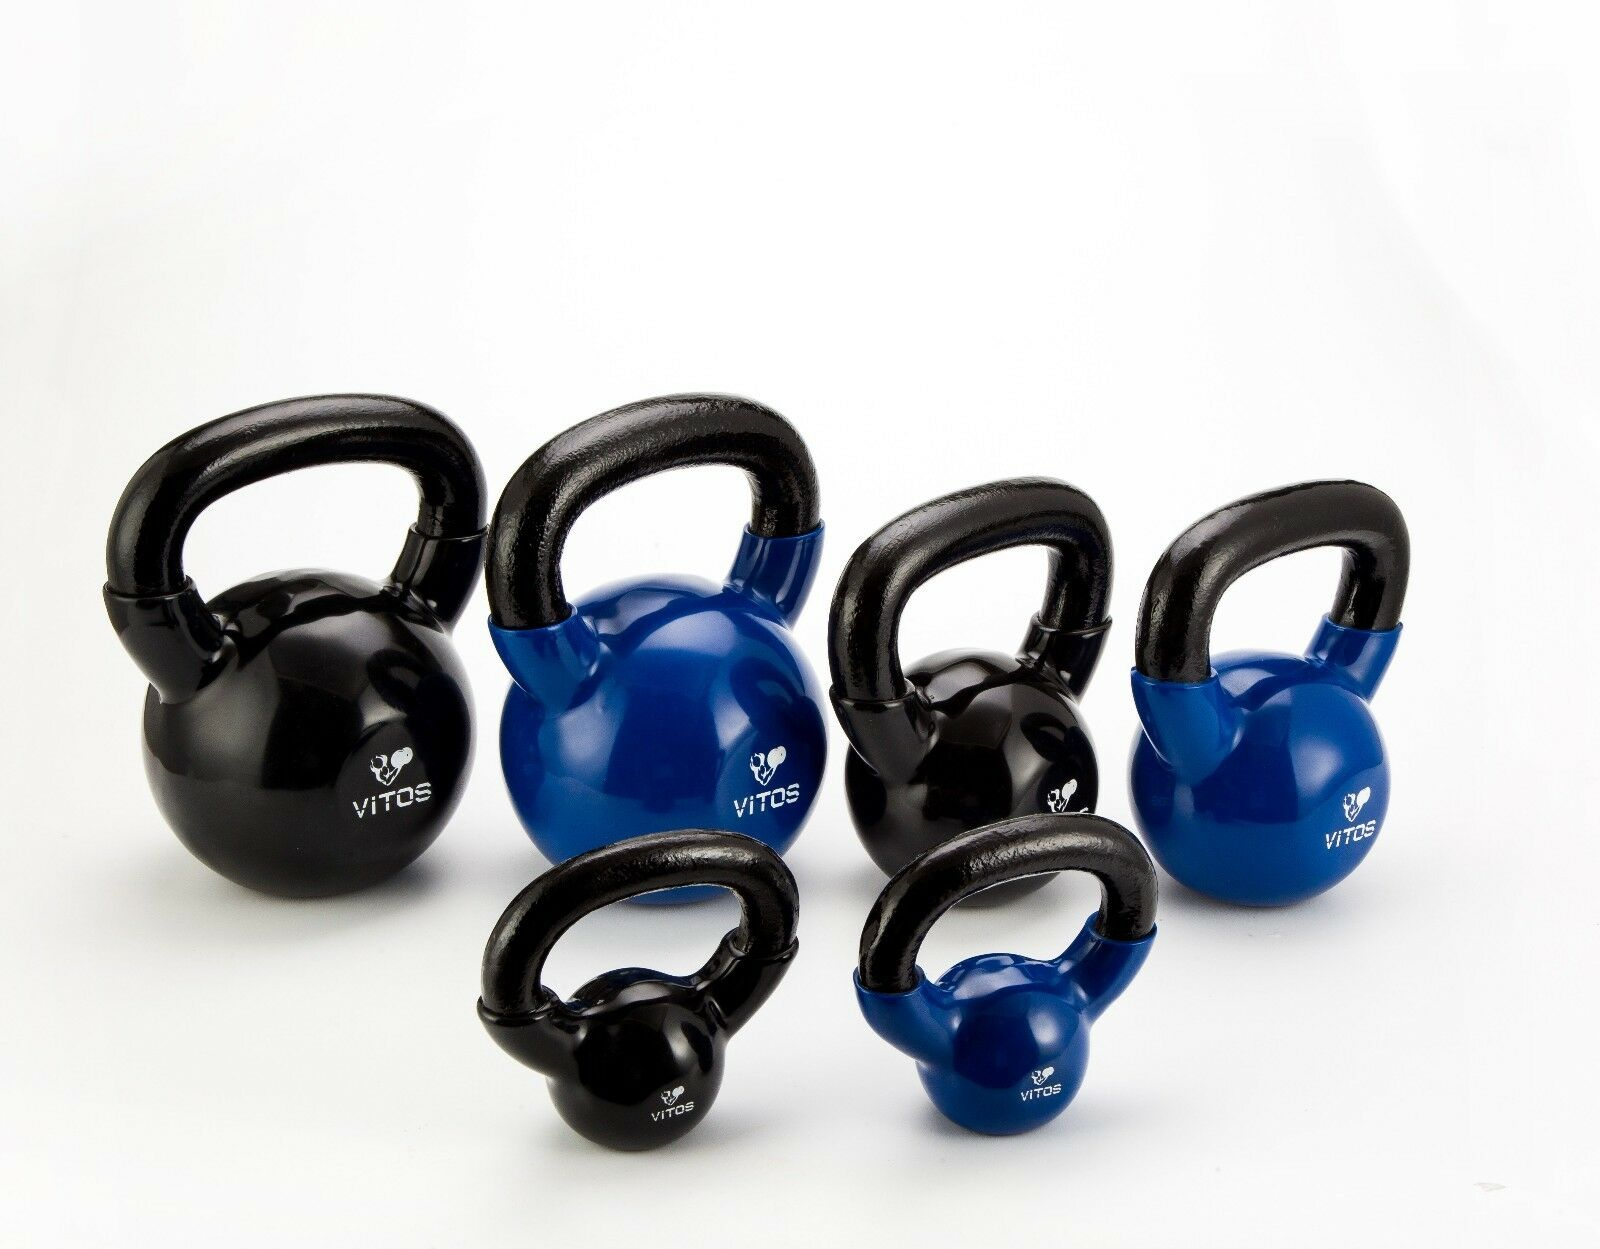 Vitos Fitness Vinyl Coated Kettlebell Weights